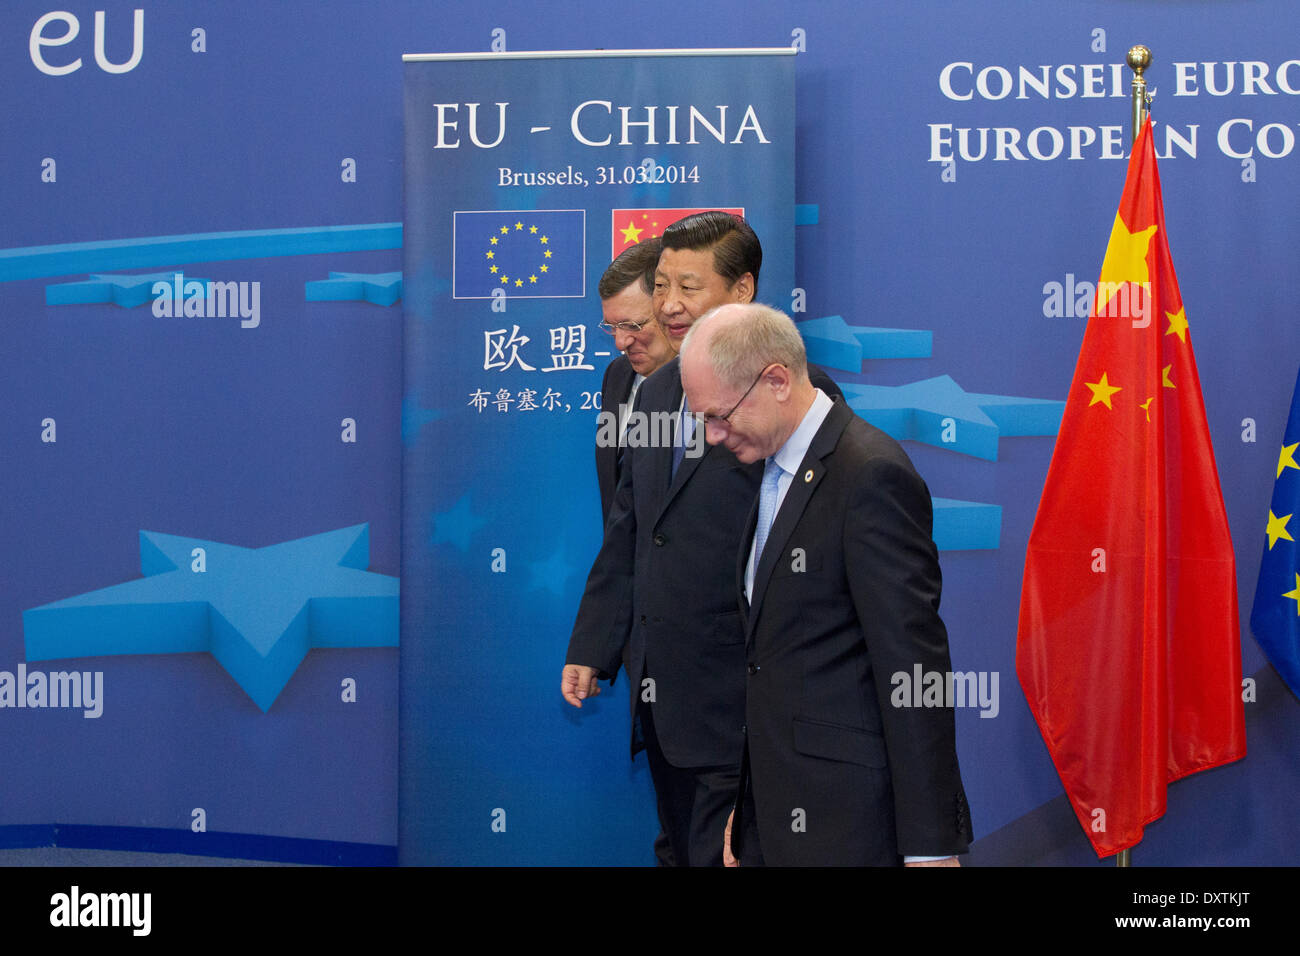 Brussels, Belgium. 31st Mar, 2014. Pictured during his visit to the European Institutions in Brussels was President Xi Jinping of the People's Republic of China with (left) Jose Manuel Barroso, President of the European Commission and (right) Herman Van Rompuy, President of the European Council. - Stock Image